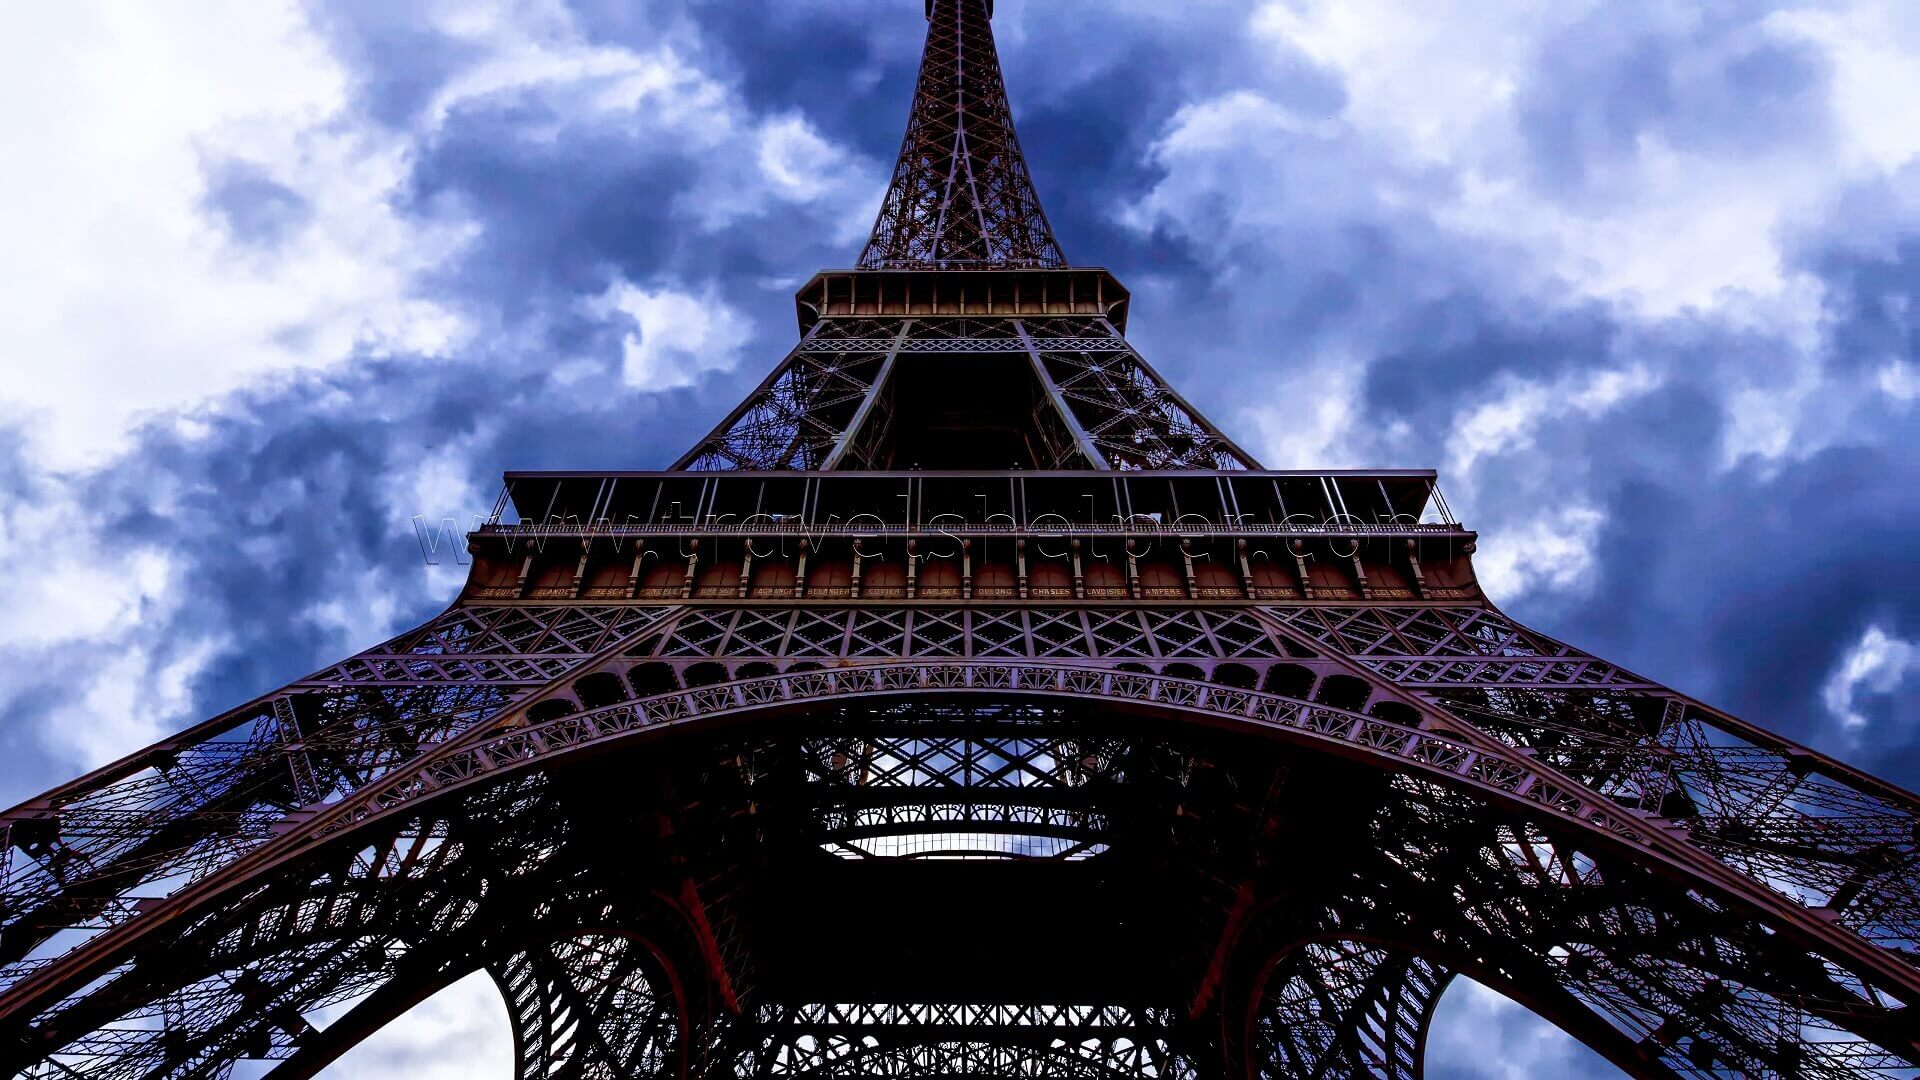 Beautiful view of famous Eiffel Tower in Paris